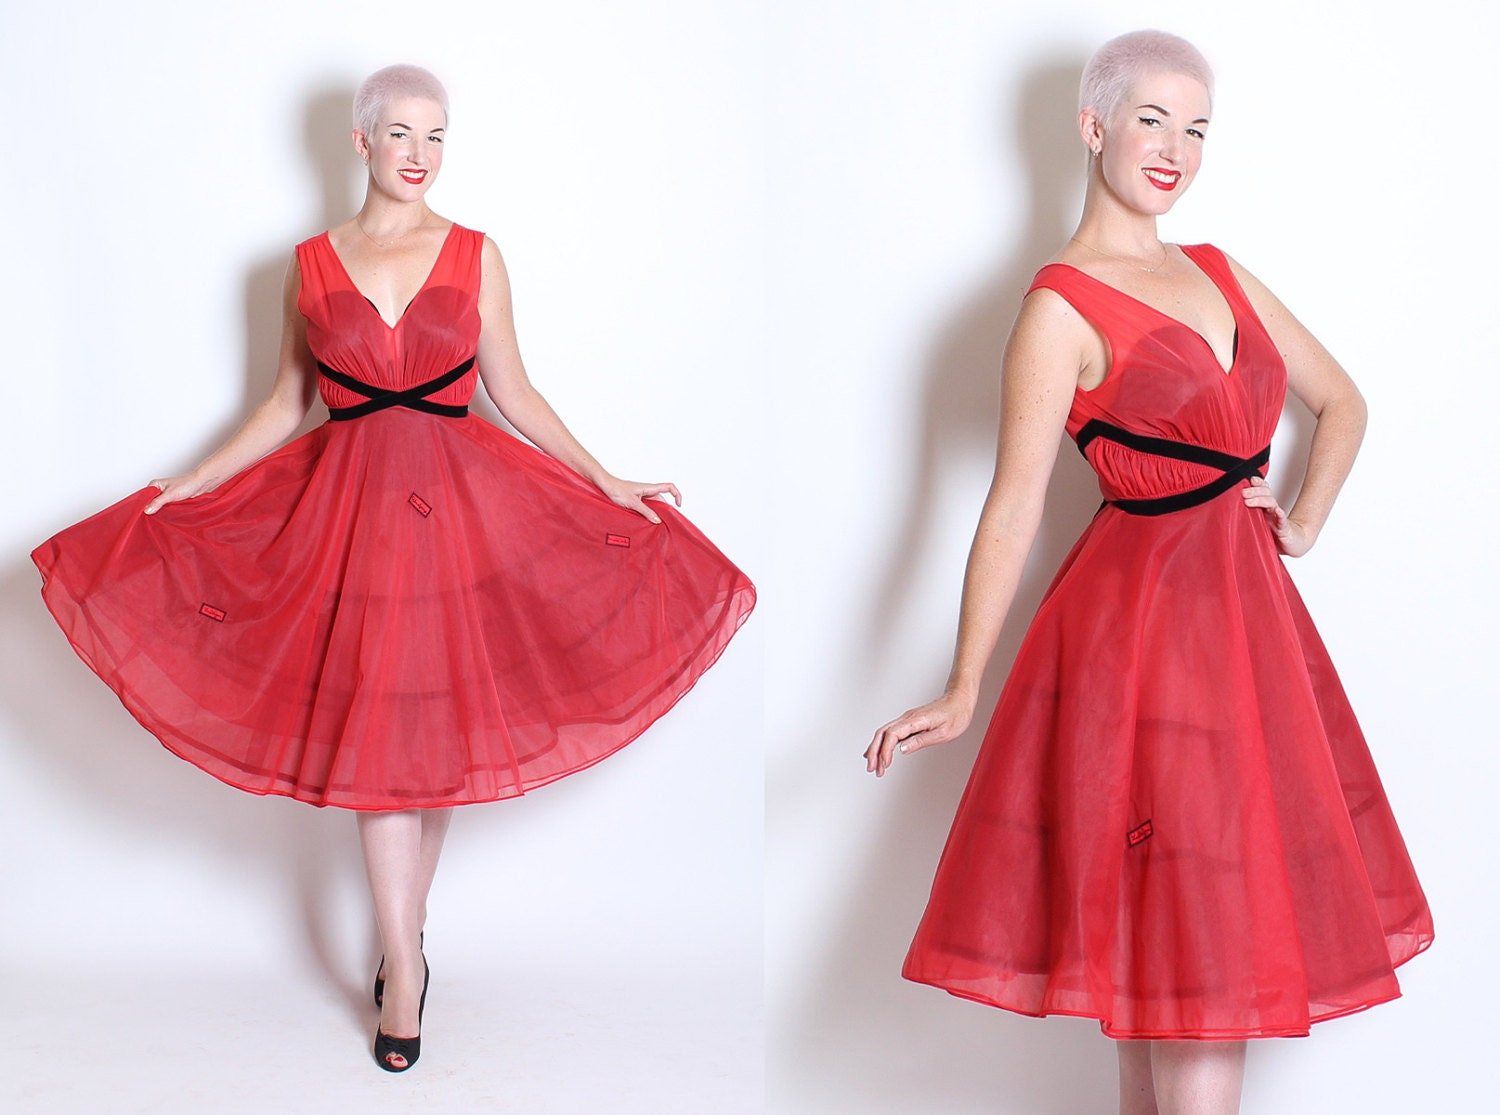 FABULOUS 1950's New Look Cherry Red Sheer Nylon Party Dress w/ Inky Black Velvet Details, Belt & City Appliques by Eyeful by The Flaums - M